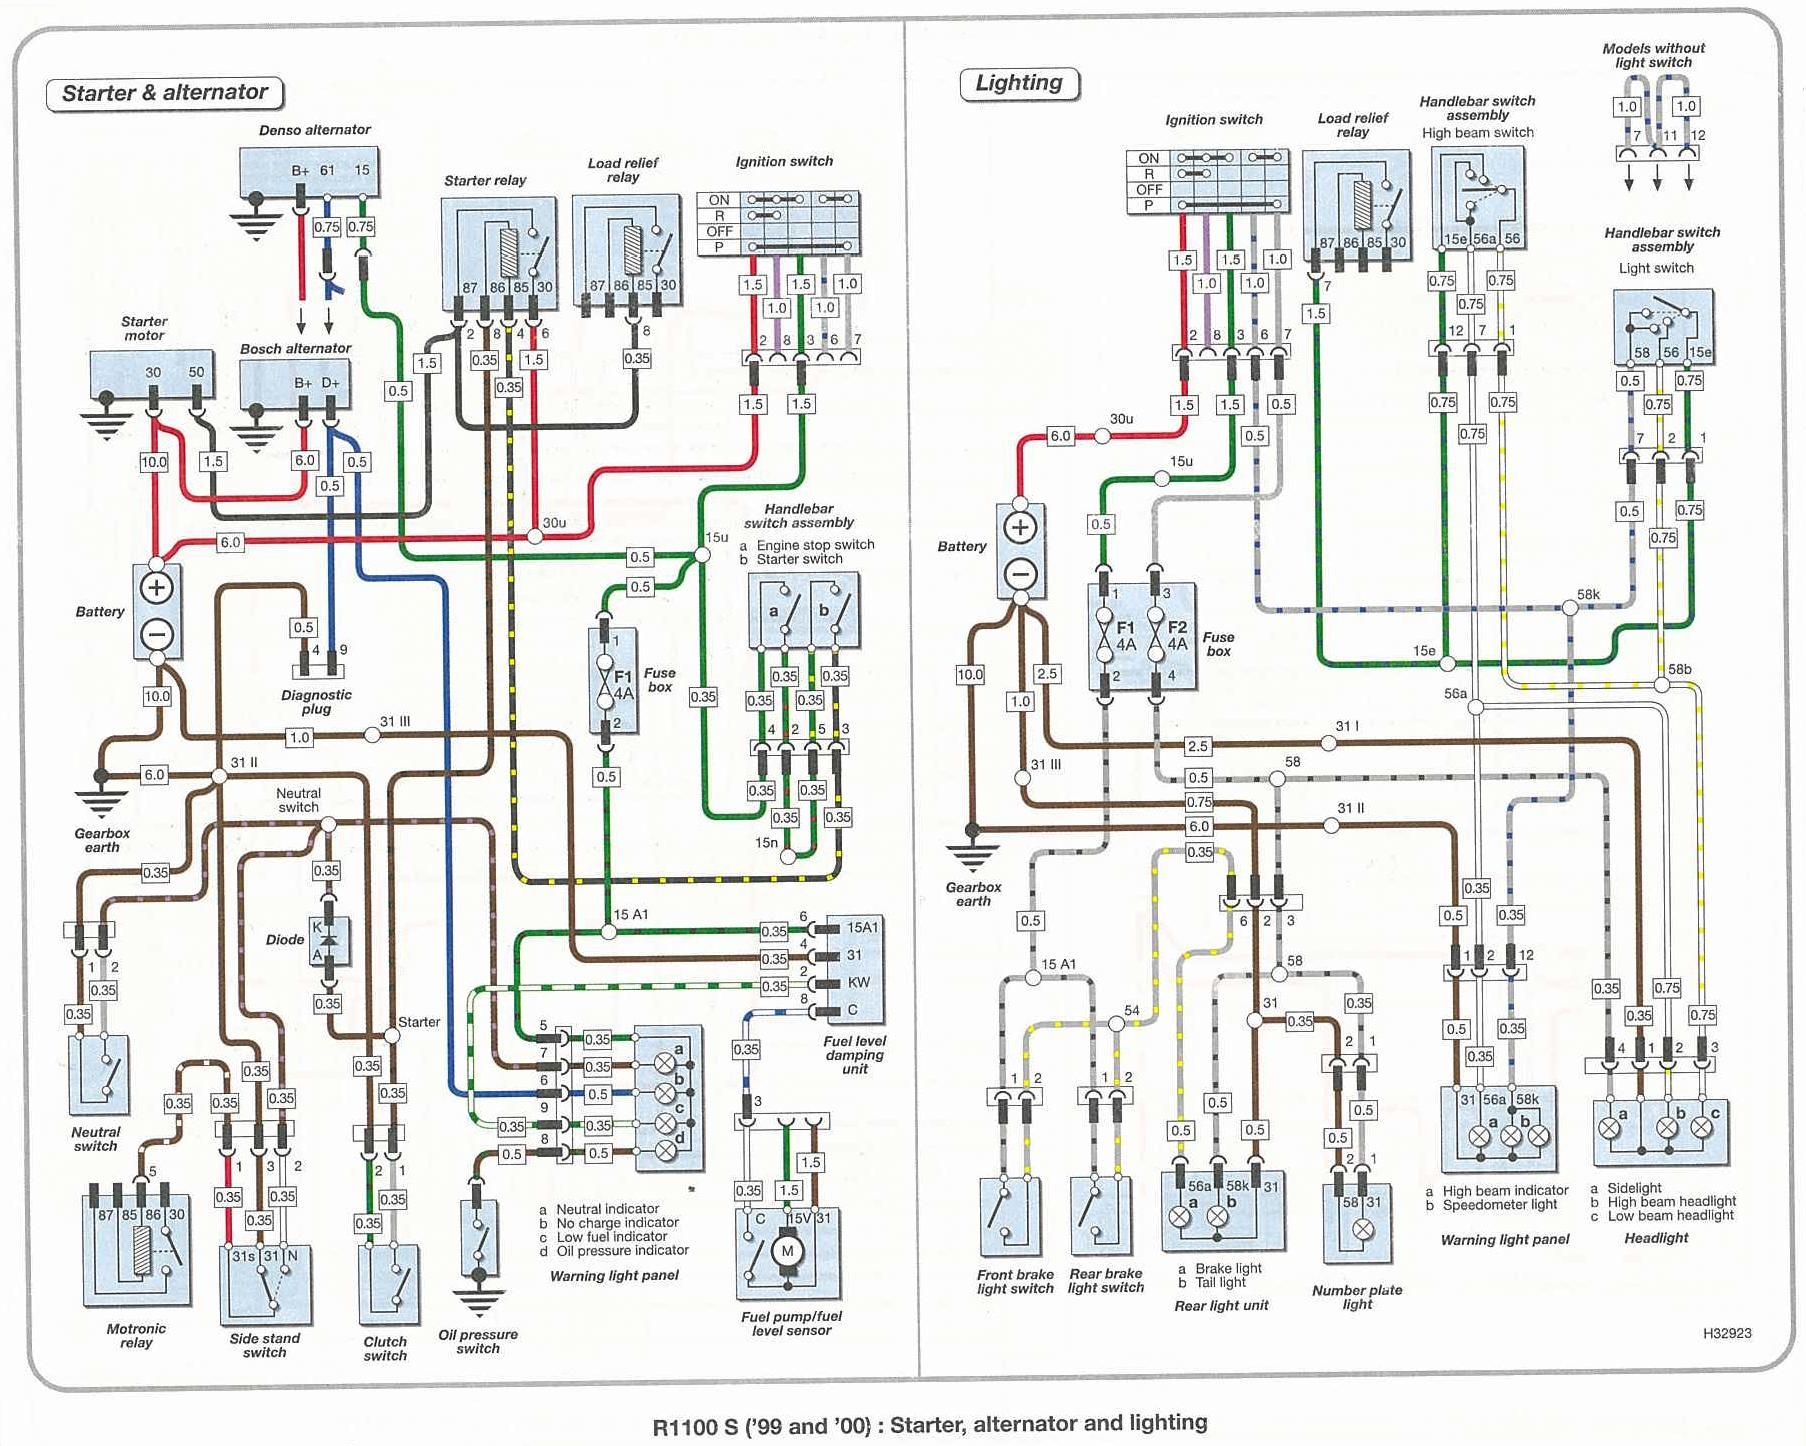 wiring02 bmw r1100s wiring diagrams bmw 2002 wiring diagram at eliteediting.co